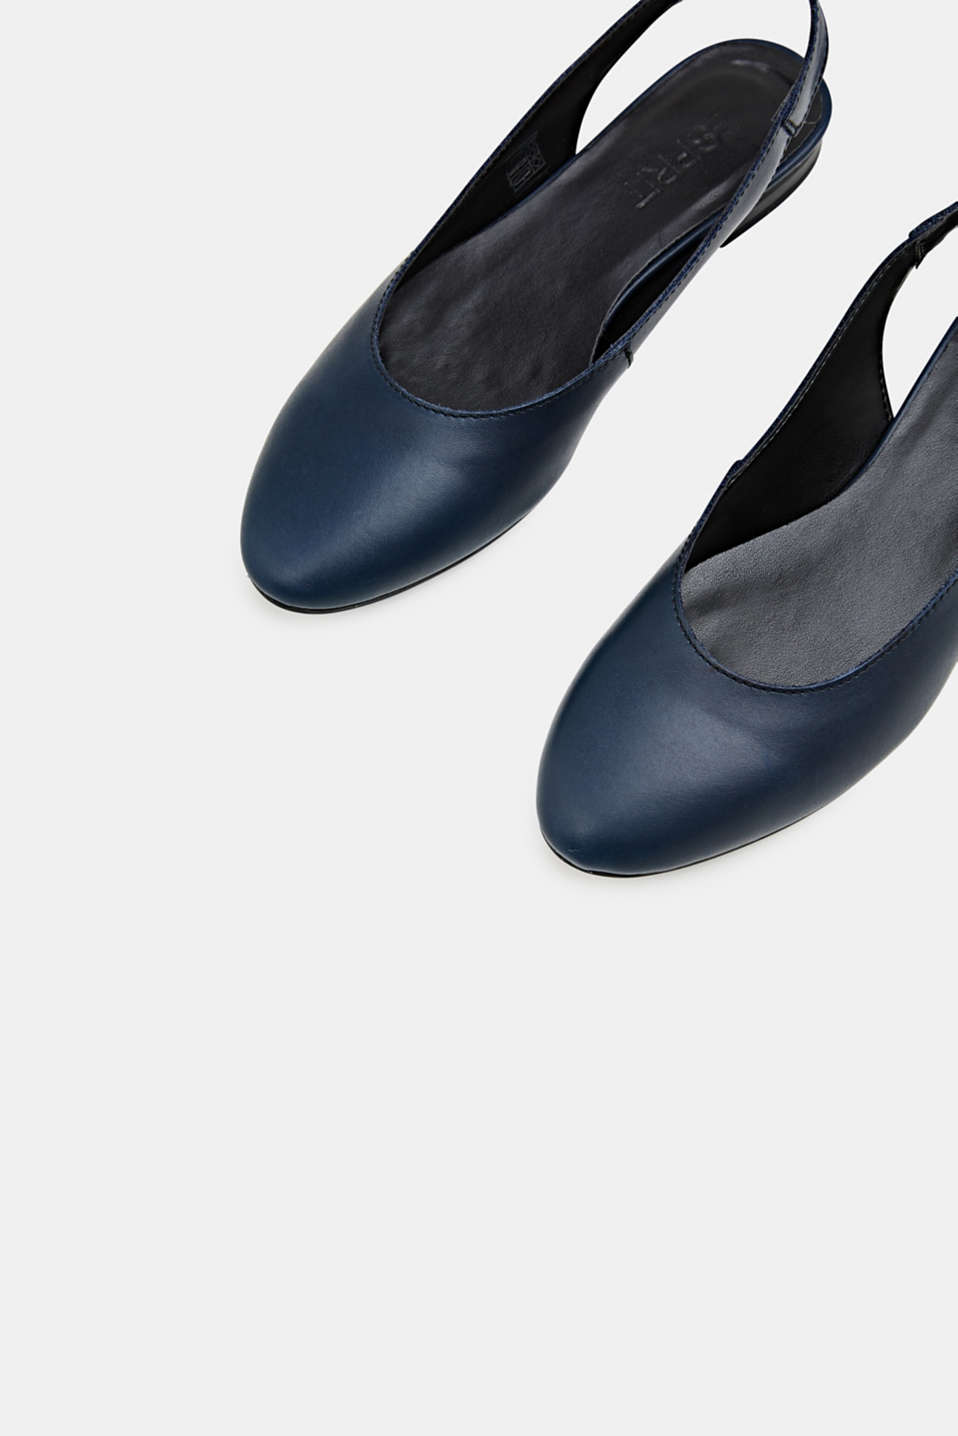 Leather sling back ballerinas, NAVY, detail image number 1